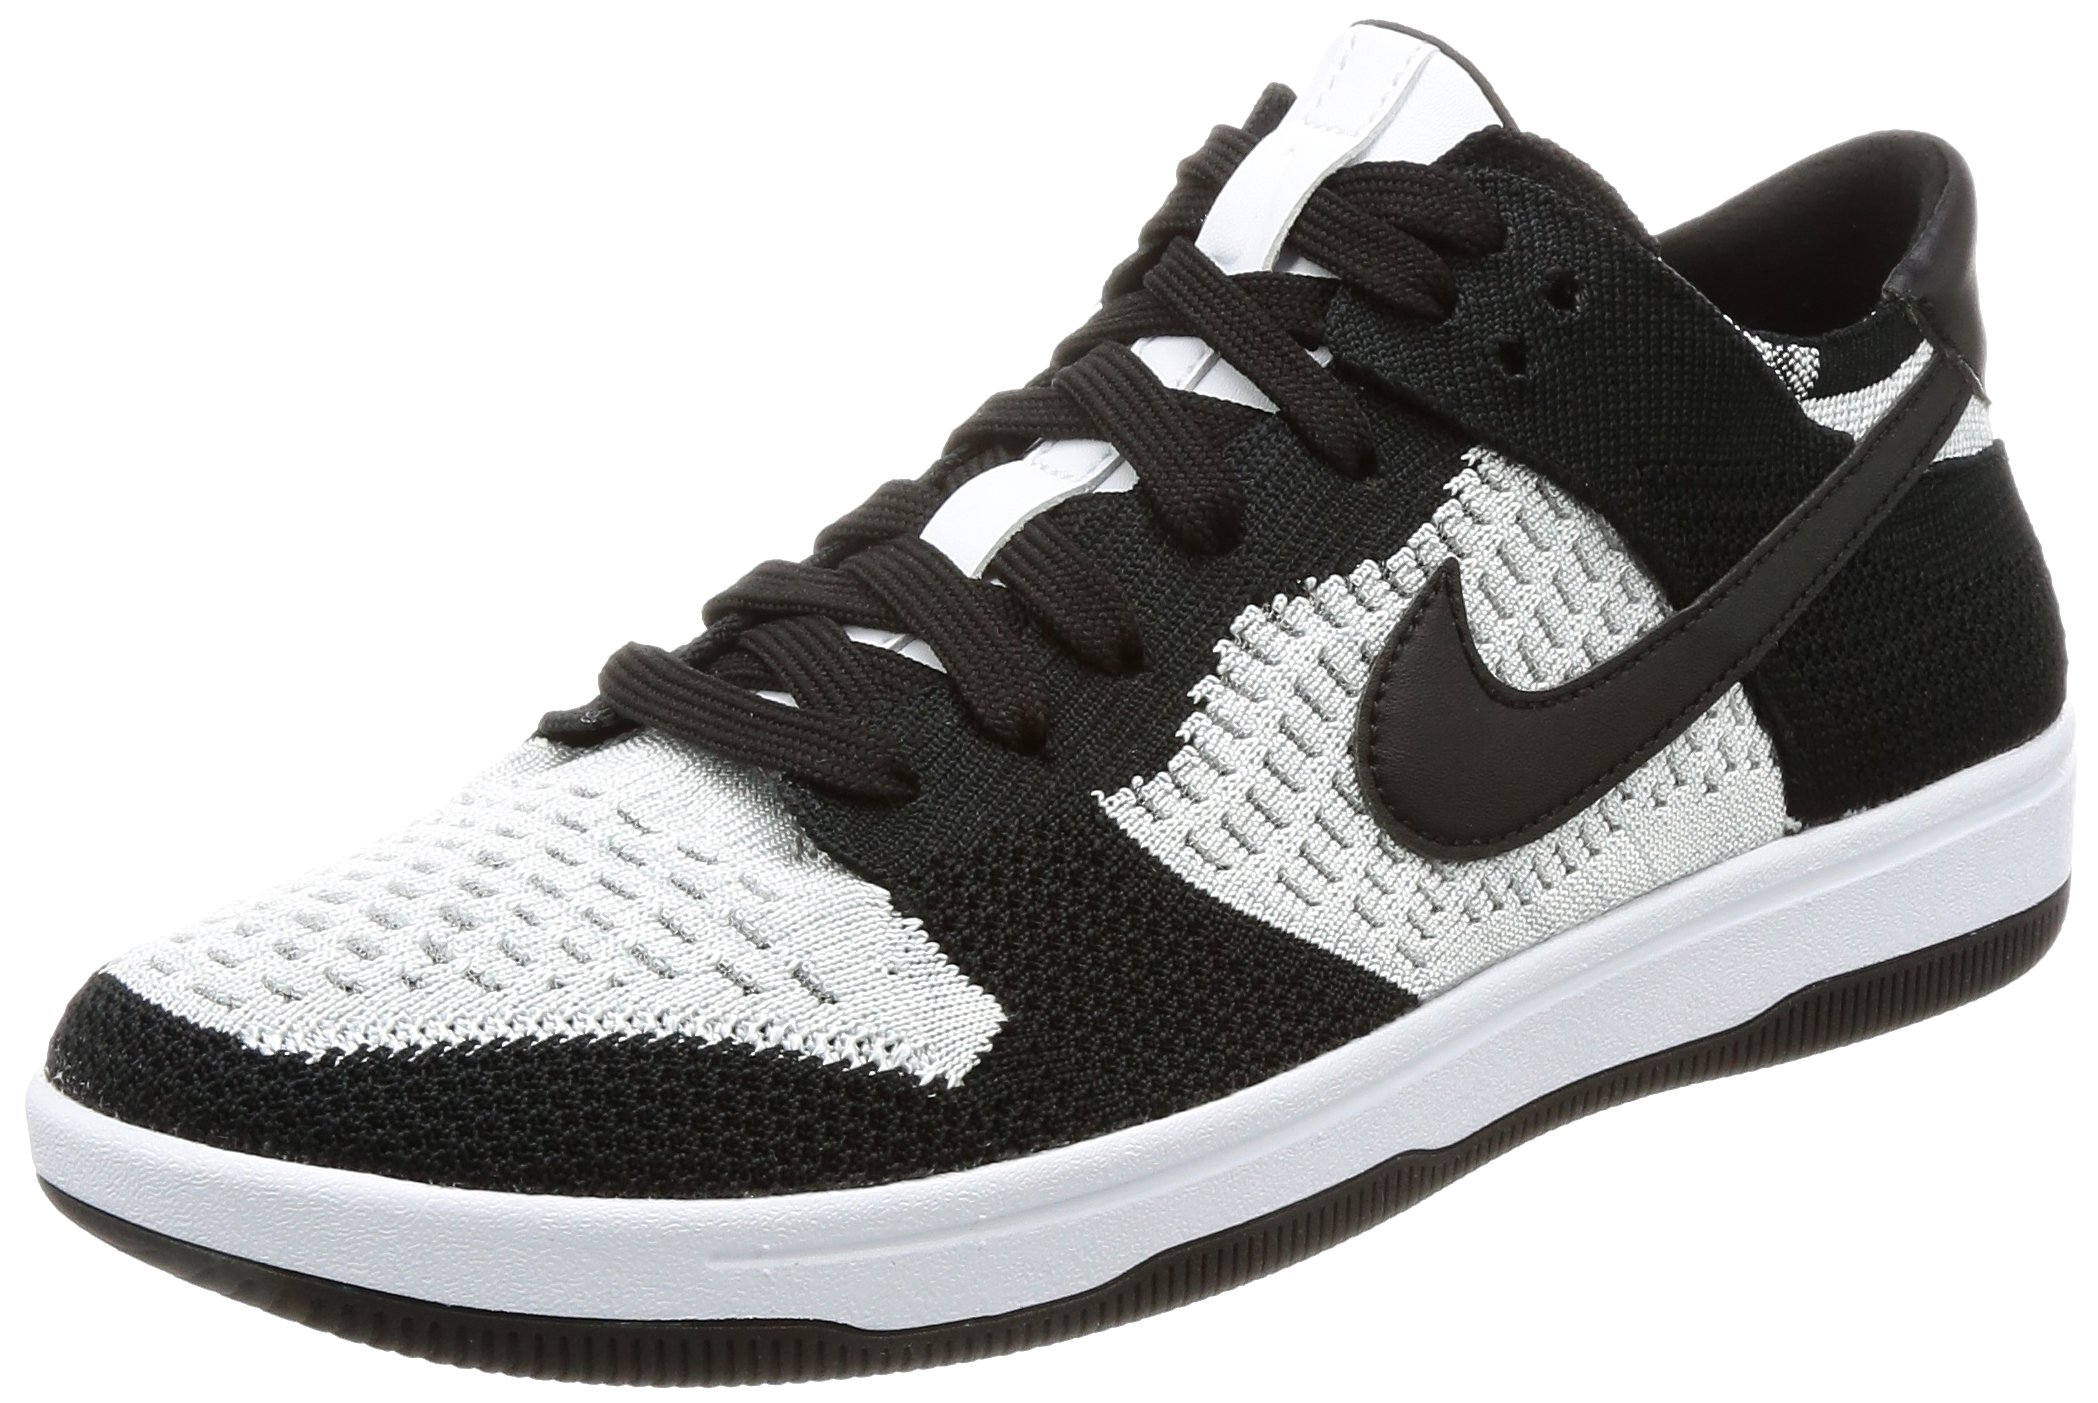 9575f0205ca768 Galleon - Nike Men s Dunk Flyknit White Black-Wolf Grey Ankle-High  Basketball Shoe - 11M